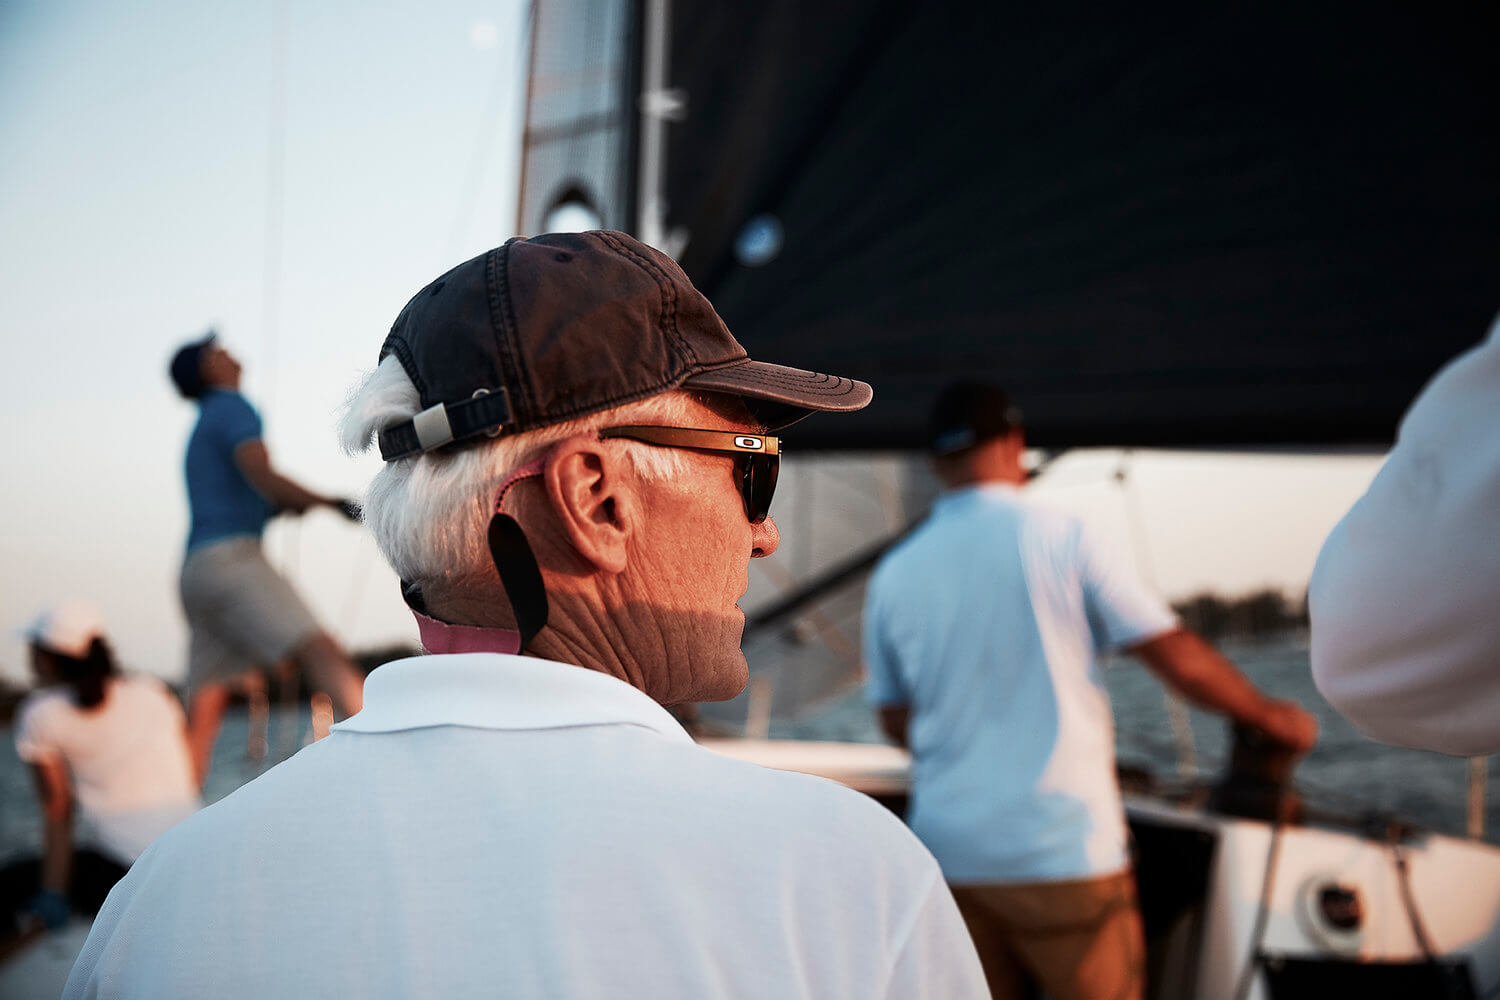 Unified Content, Max Rosenstein, RCYC, Royal Canadian Yacht Club, Royal Canadian Yacht Club Racing, Sailing, Sailing toronto, racing toronto, lake ontario, summer, toronto summer, summer sports,